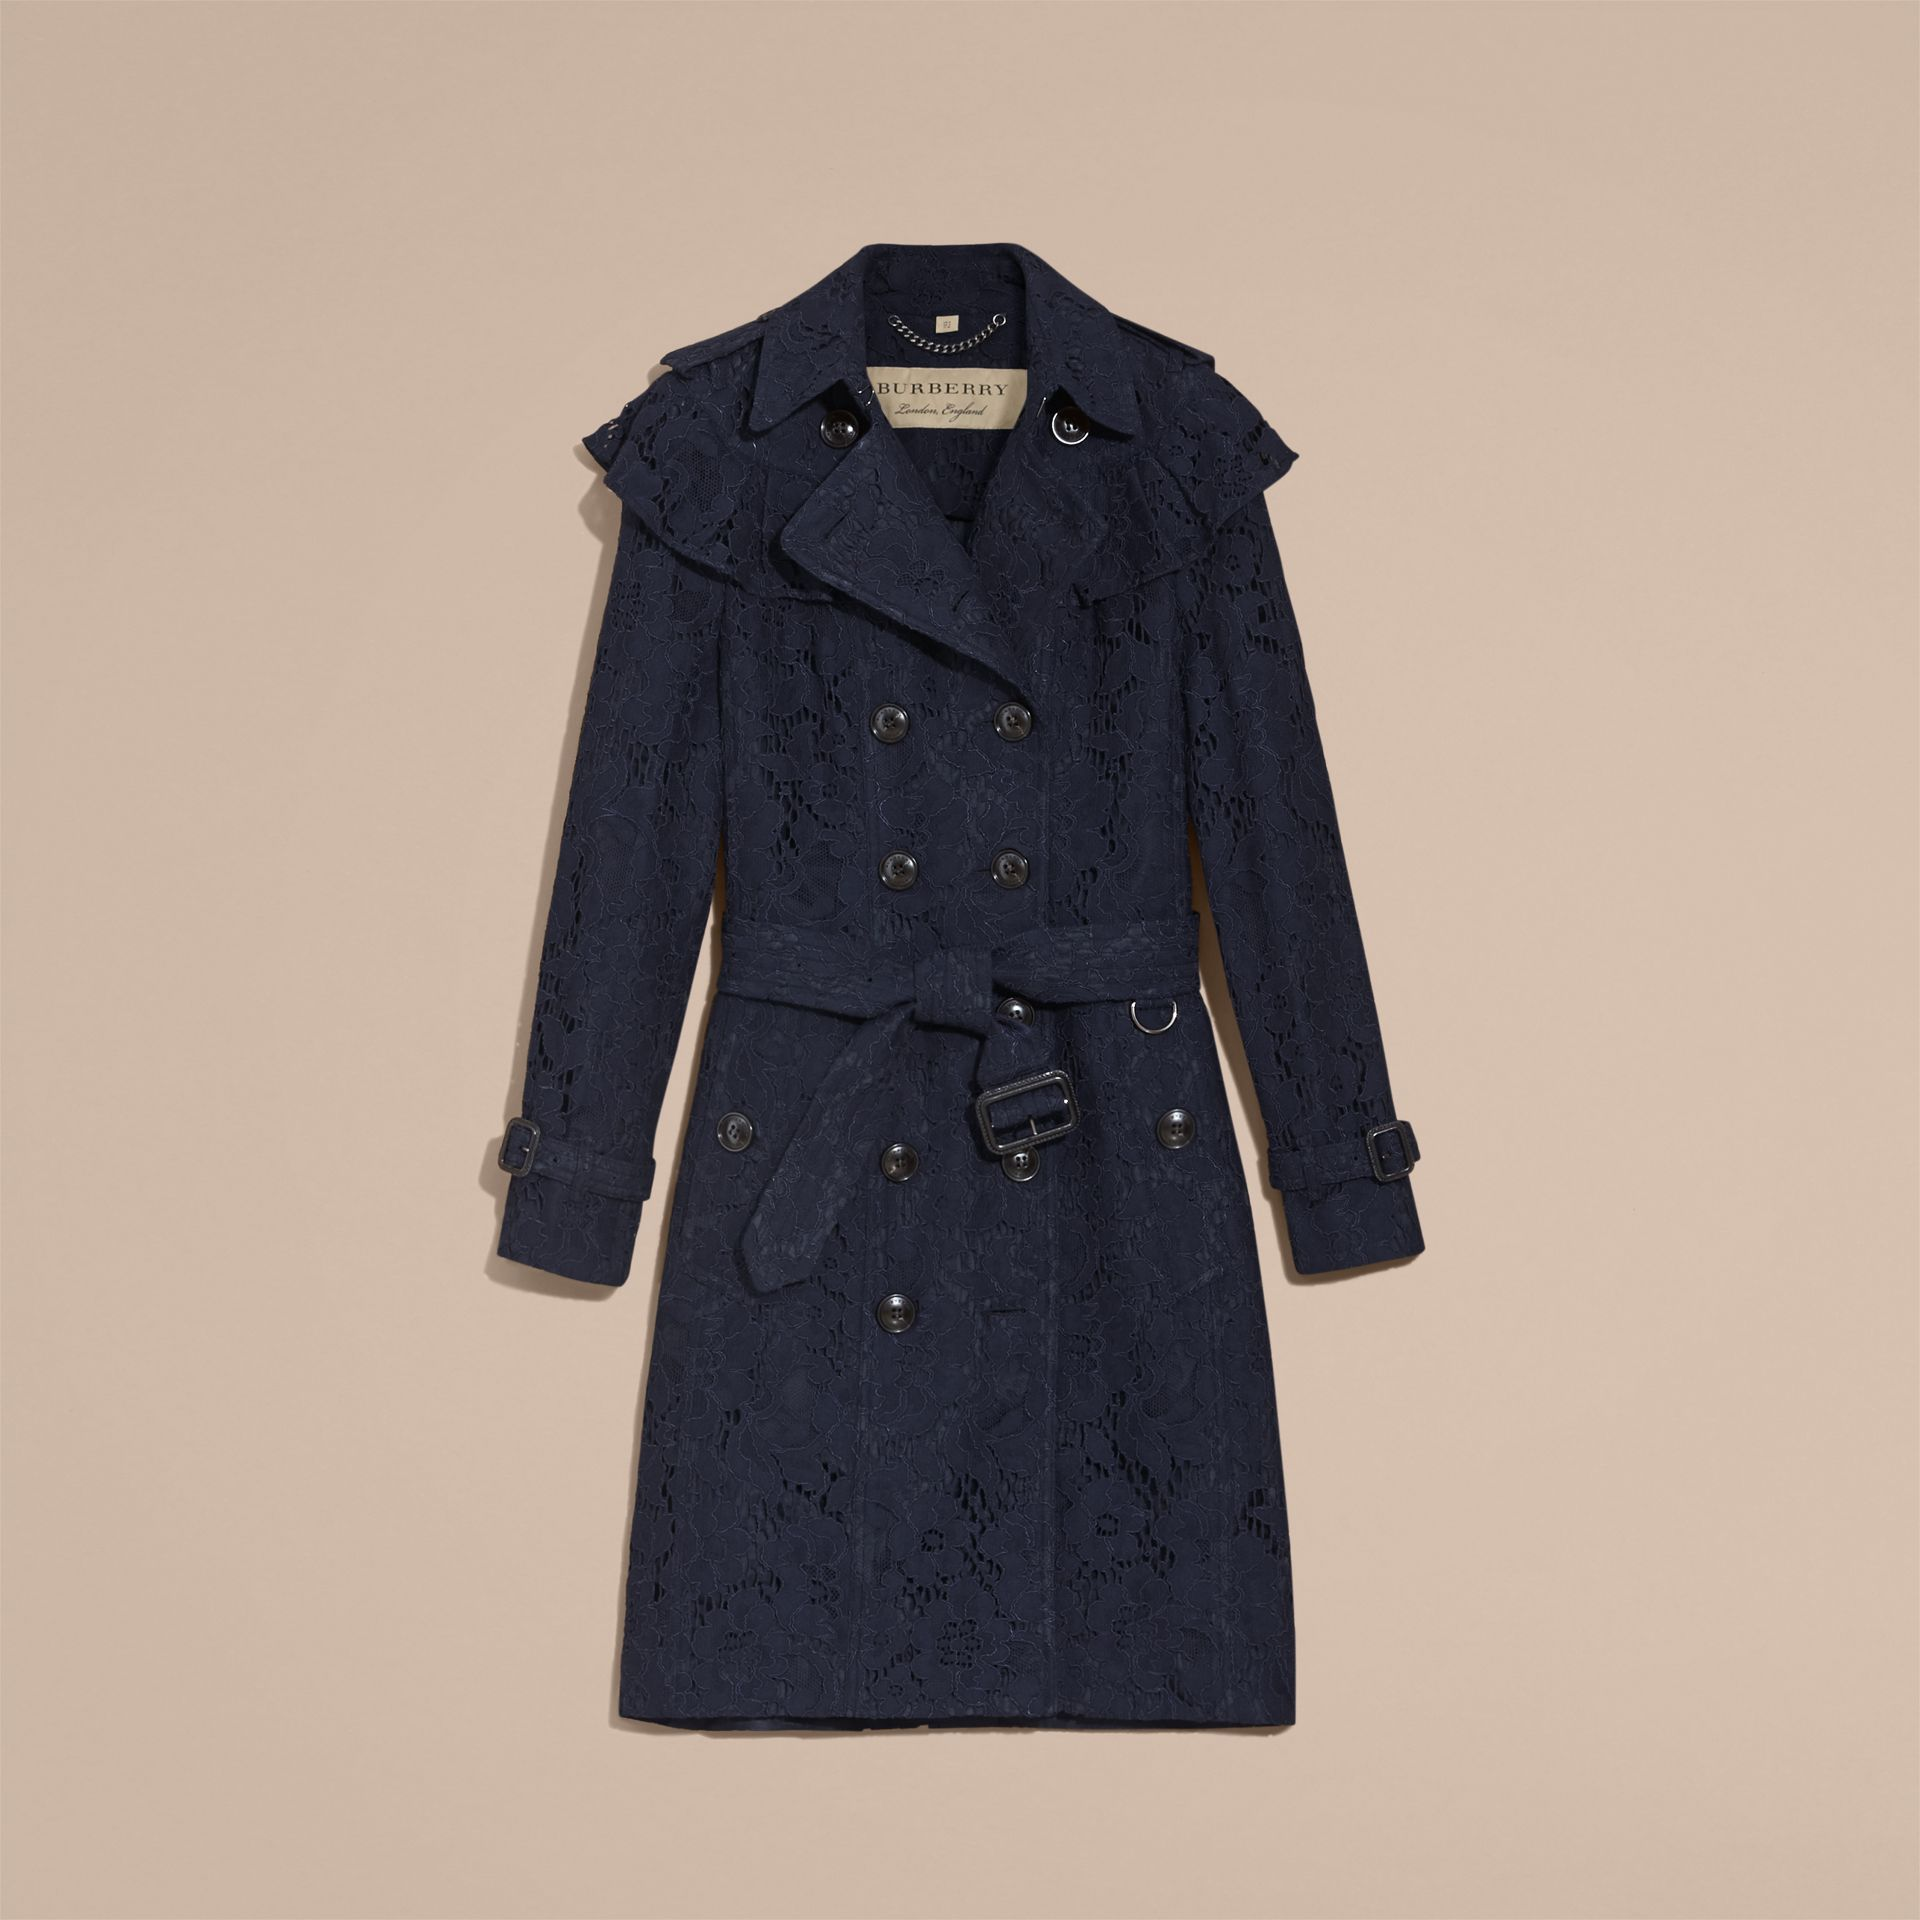 Ruffle Detail Macramé Lace Trench Coat Navy - gallery image 4